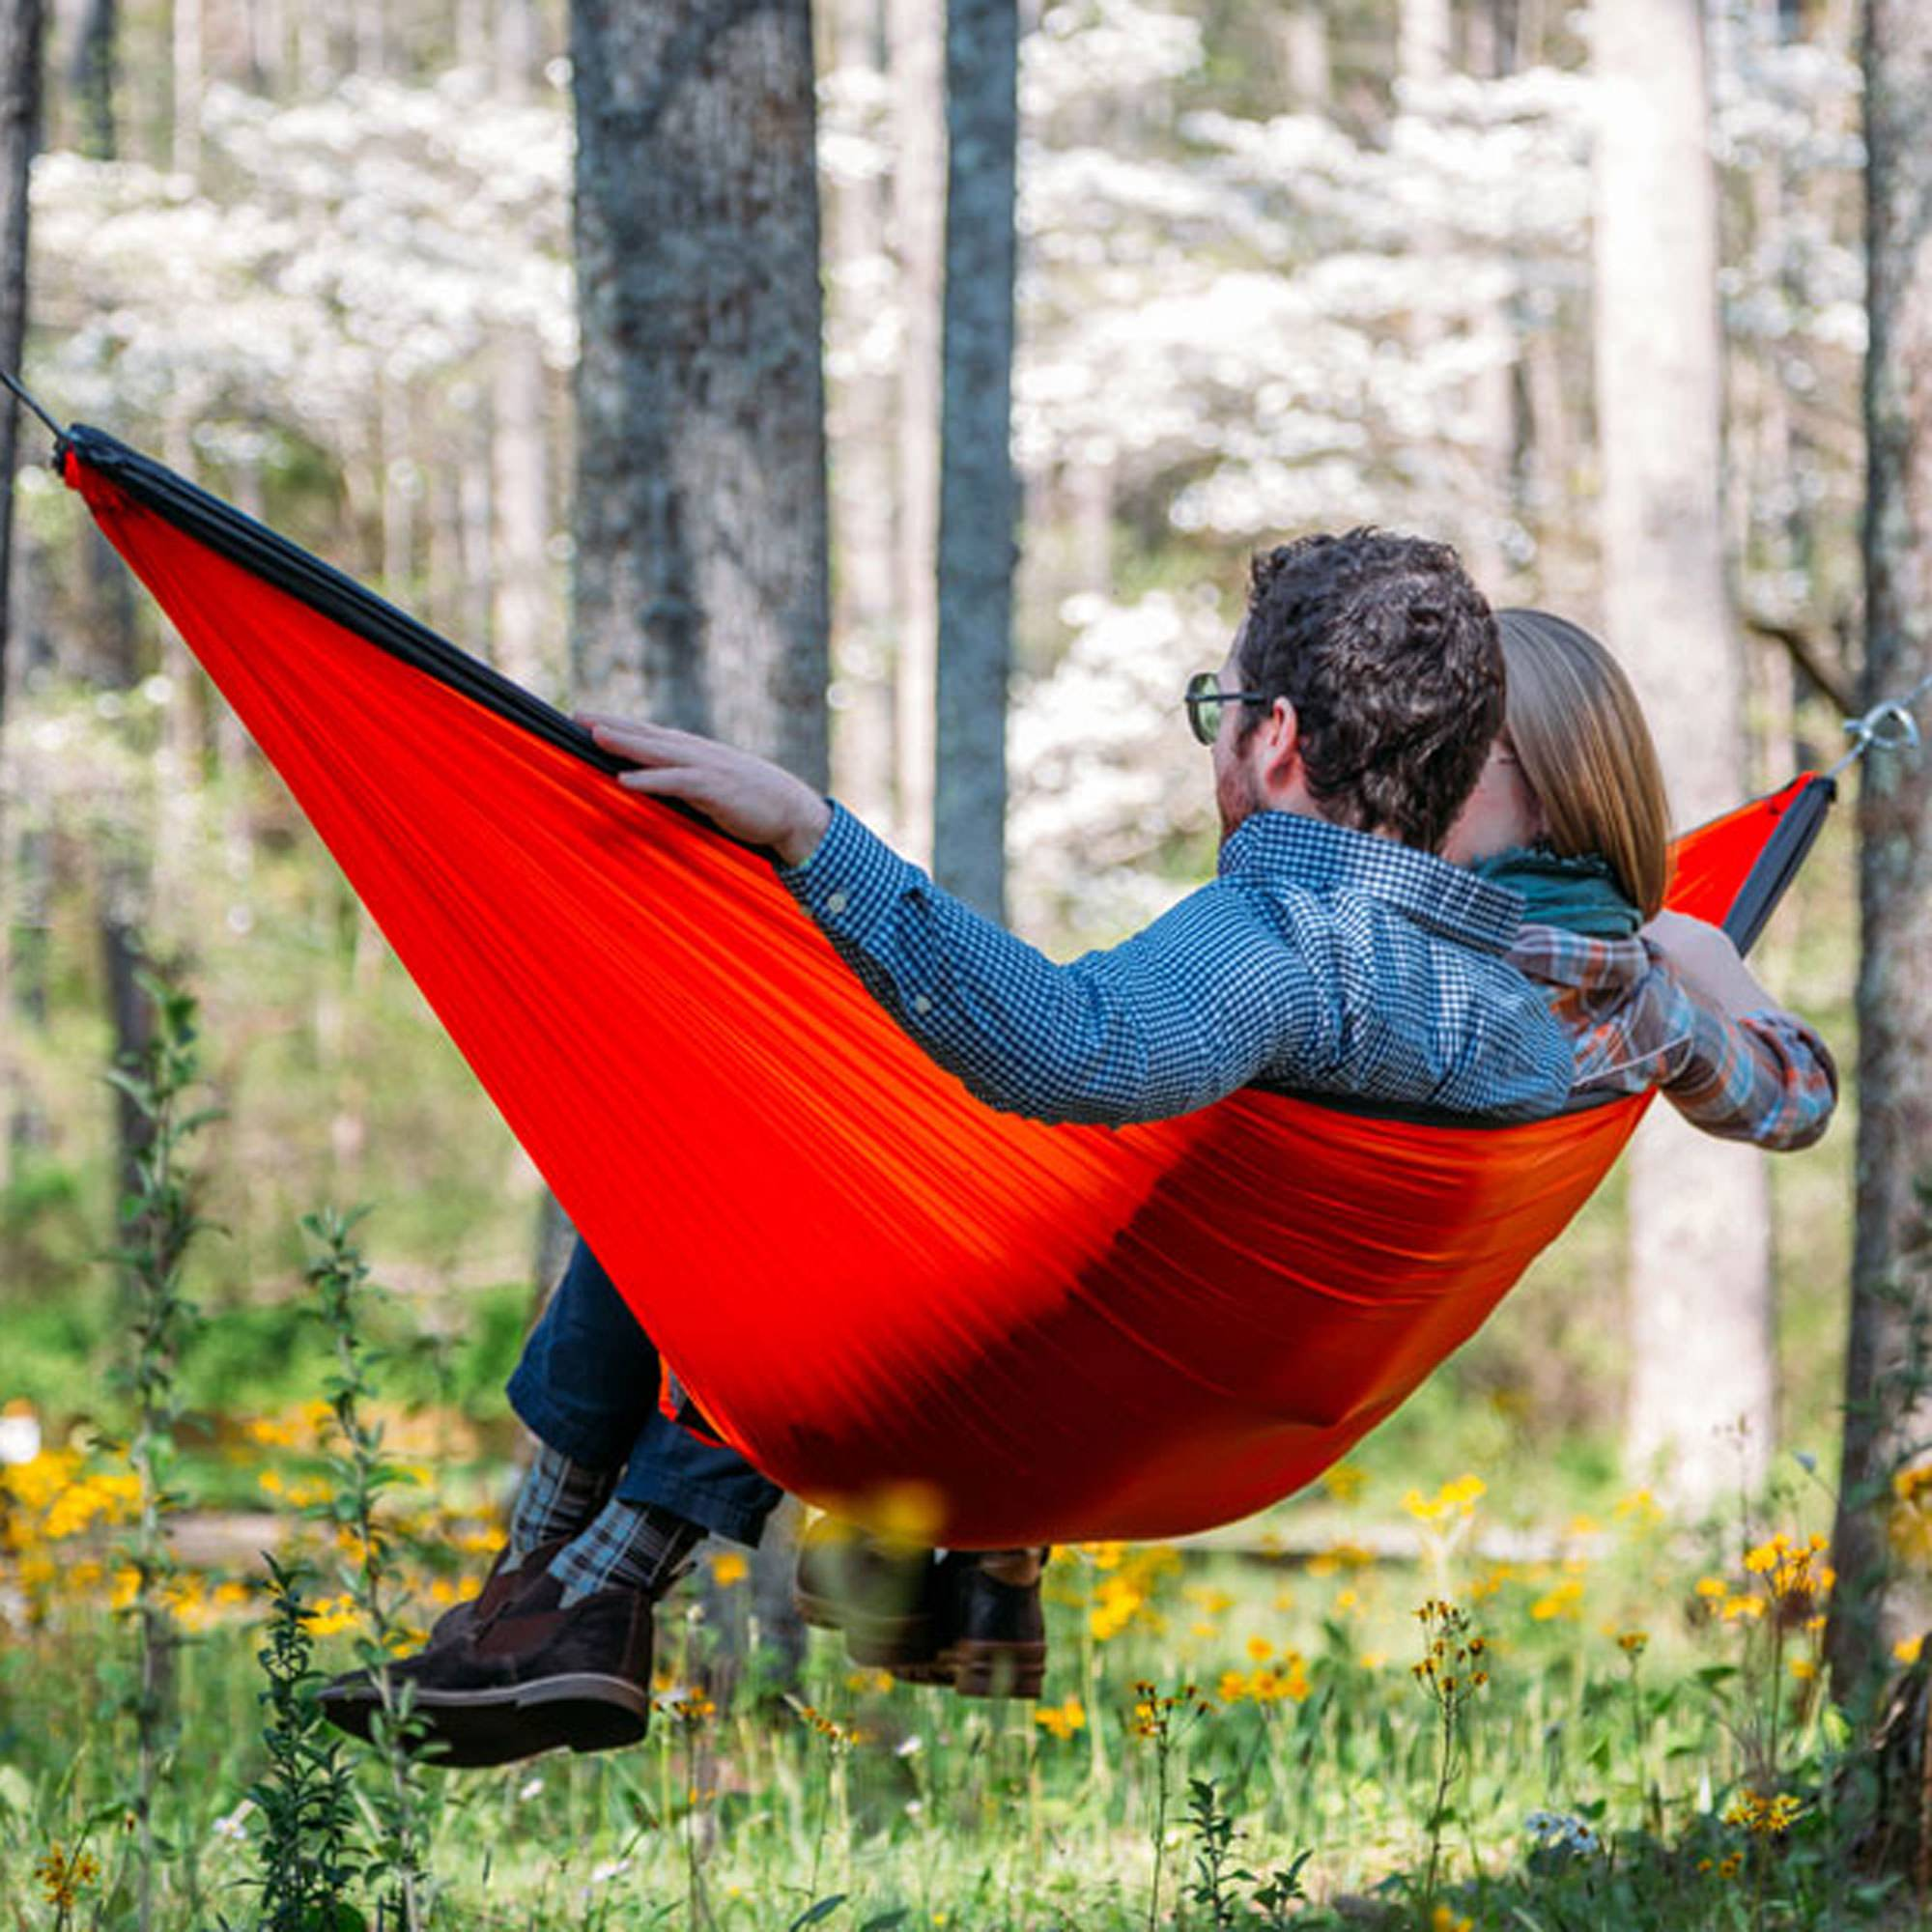 backpacking nest the kid project profly img double eno gear with review hammock for